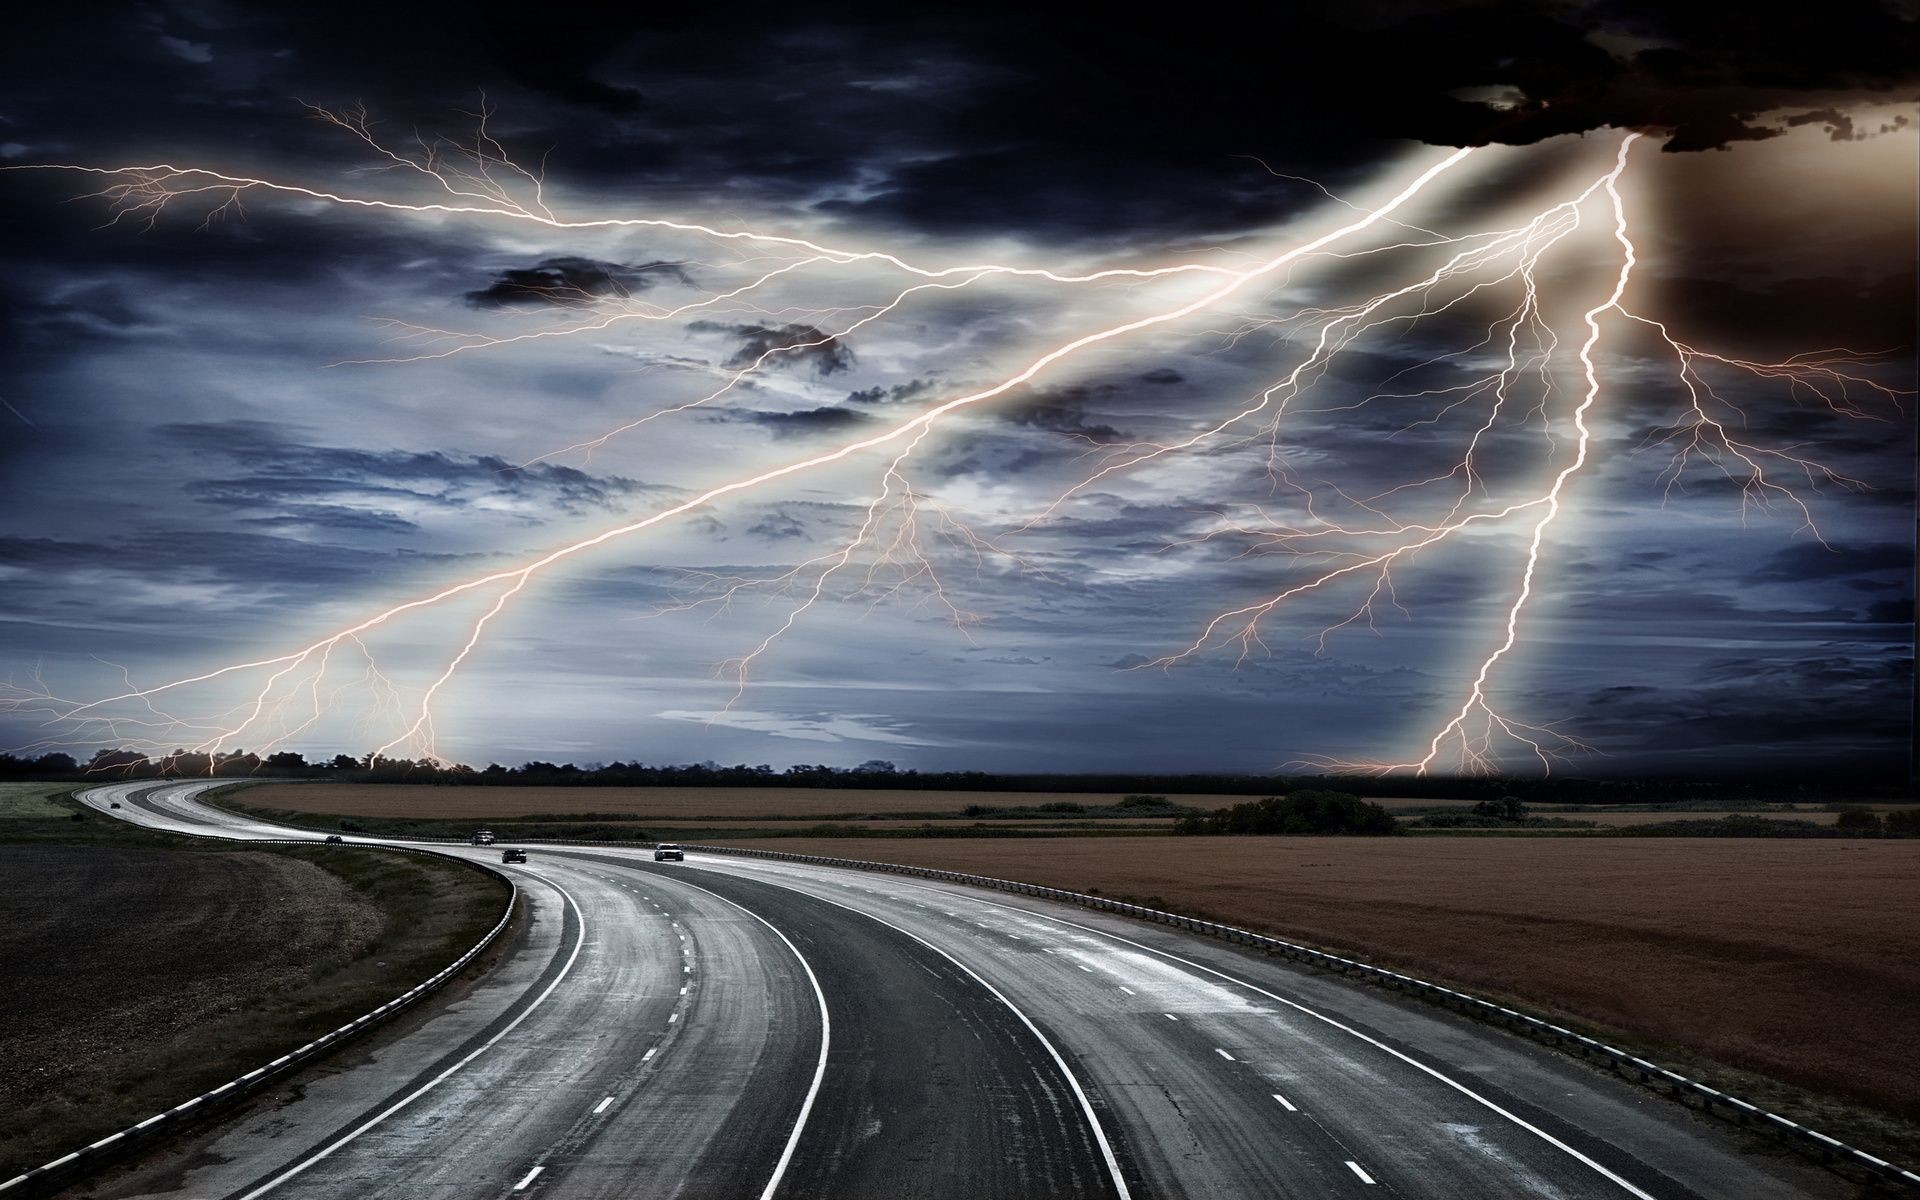 Lightning Wallpapers HD Android Apps on Google Play | HD Wallpapers |  Pinterest | Hd wallpaper and Wallpaper